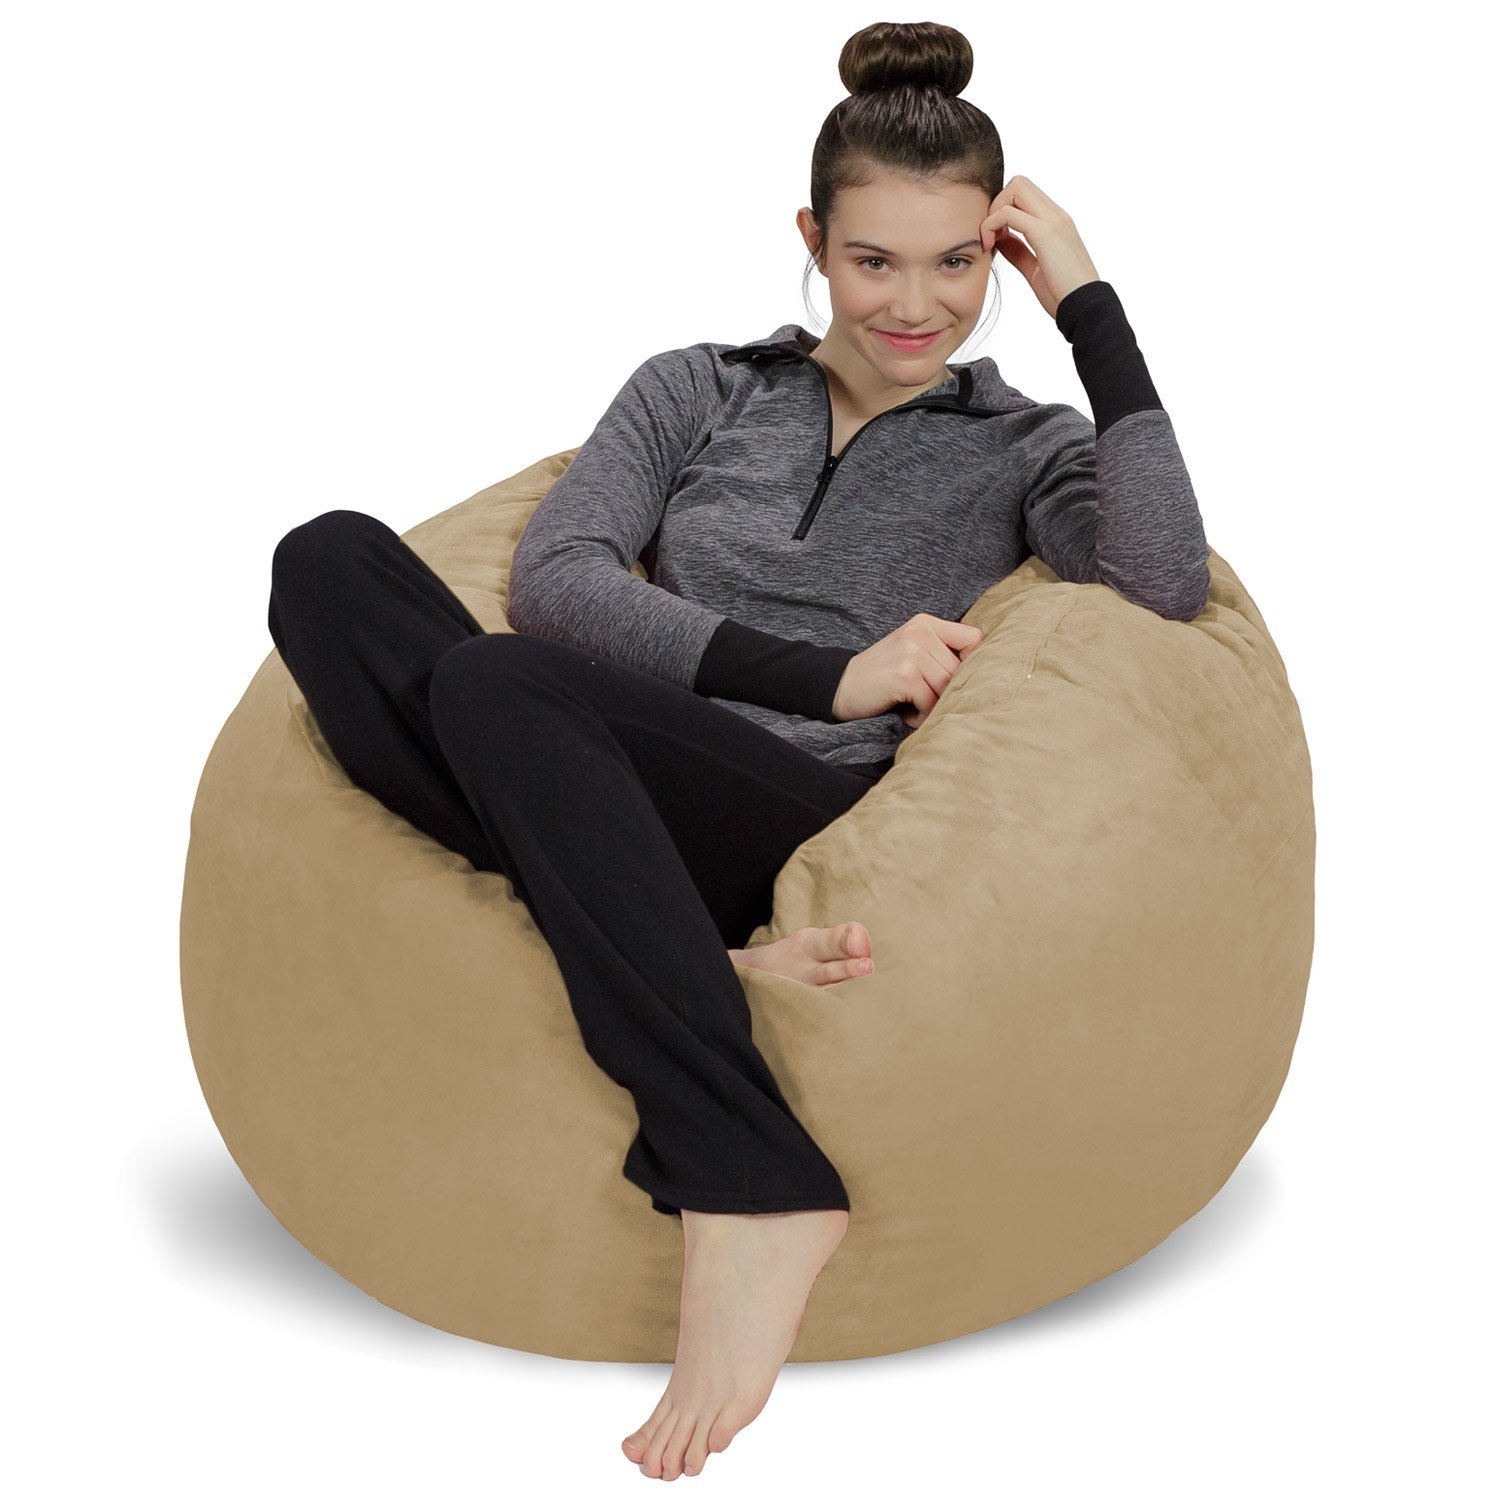 Incroyable Amazon.com: Sofa Sack   Plush, Ultra Soft Bean Bag Chair   Memory Foam Bean  Bag Chair With Microsuede Cover   Stuffed Foam Filled Furniture And  Accessories ...